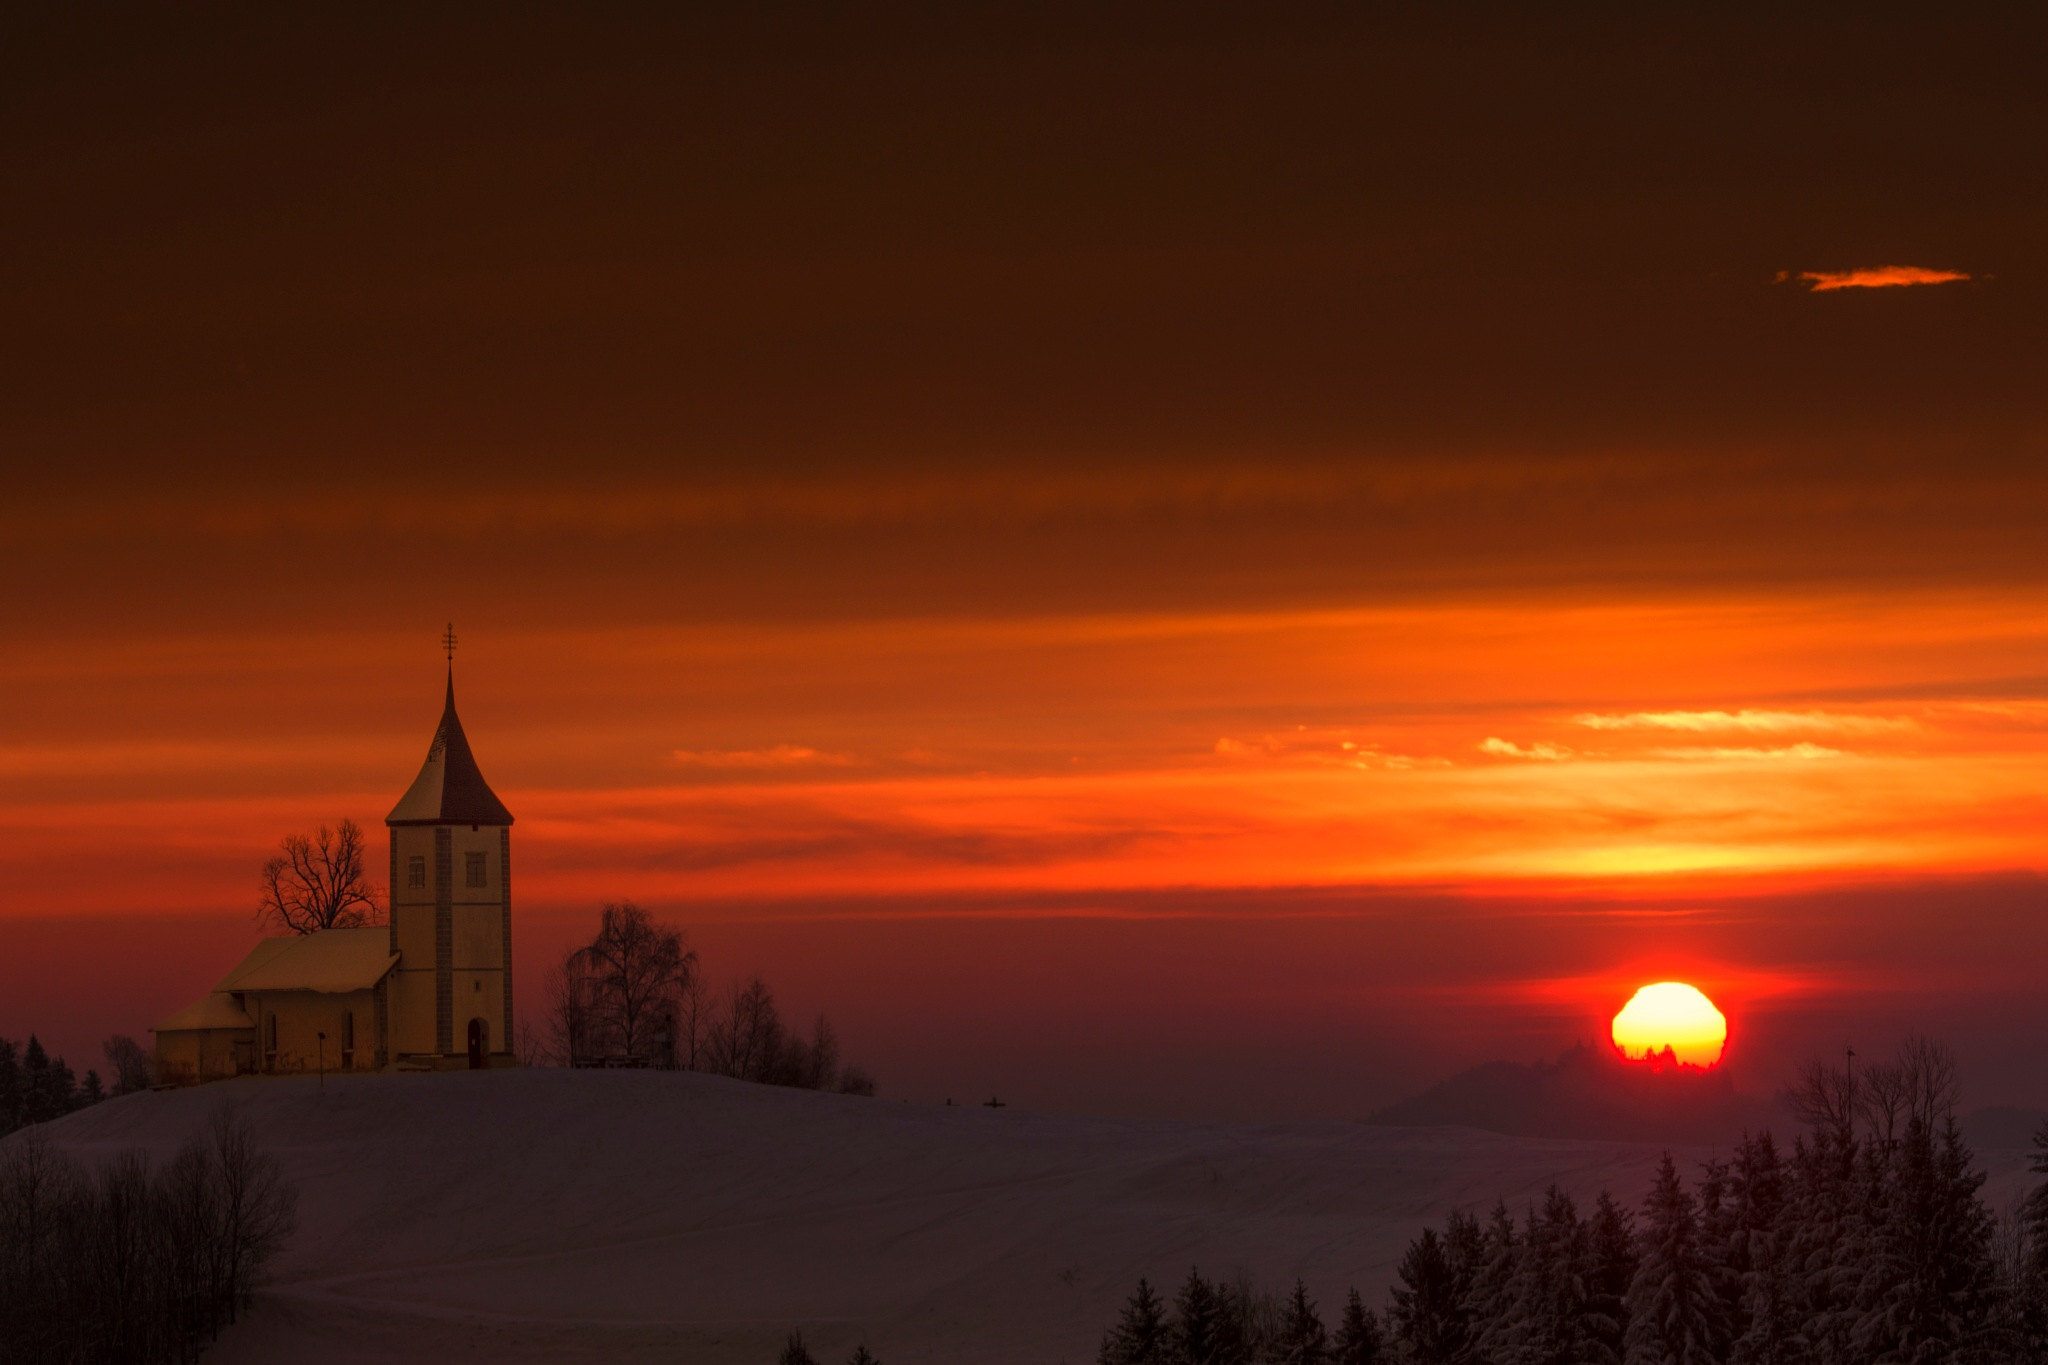 Saints Primus and Felician Church by Beno Medic